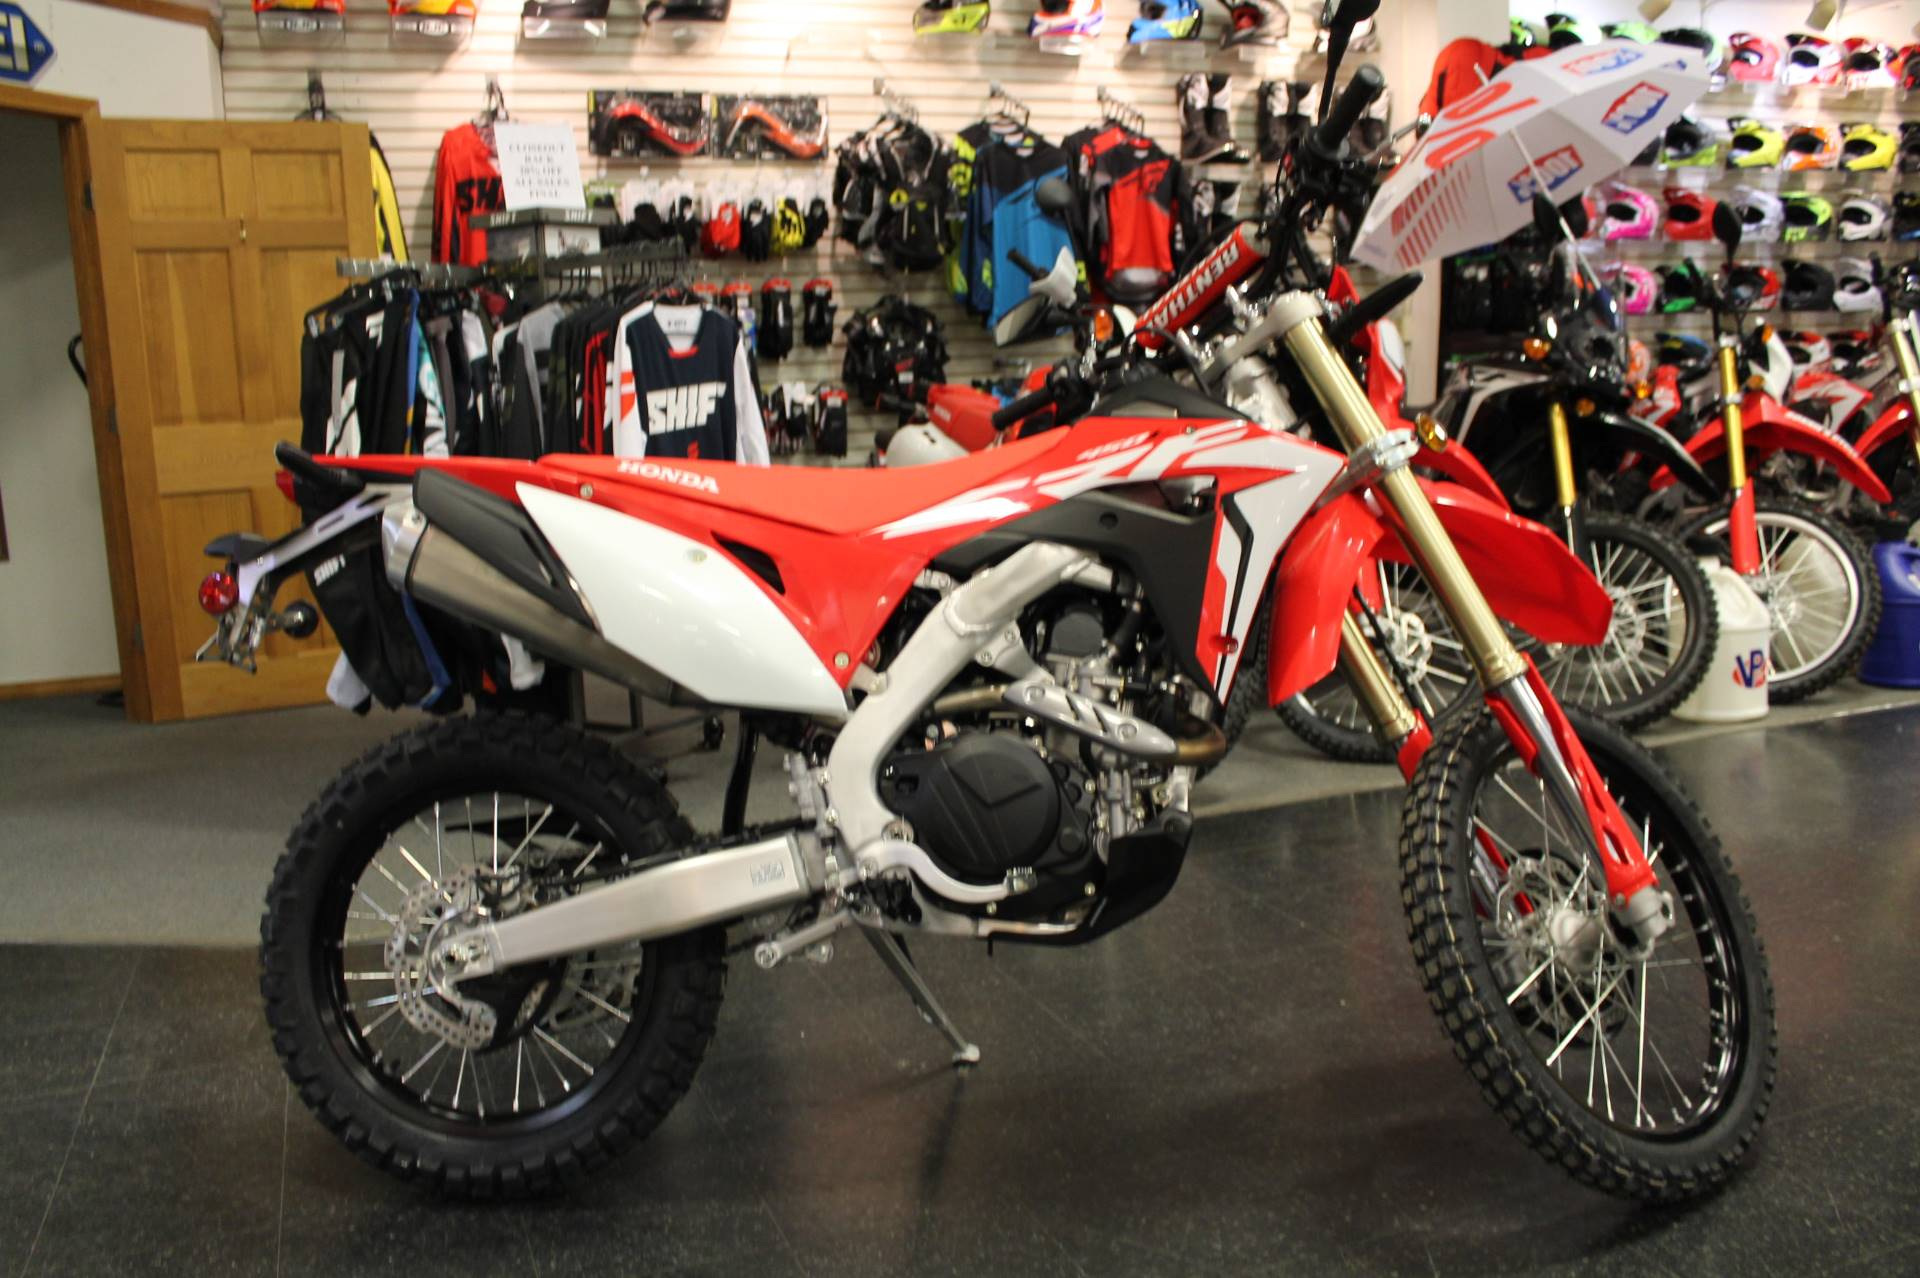 New 2019 Honda Crf450l Motorcycles In Adams Ma Stock Number 002380